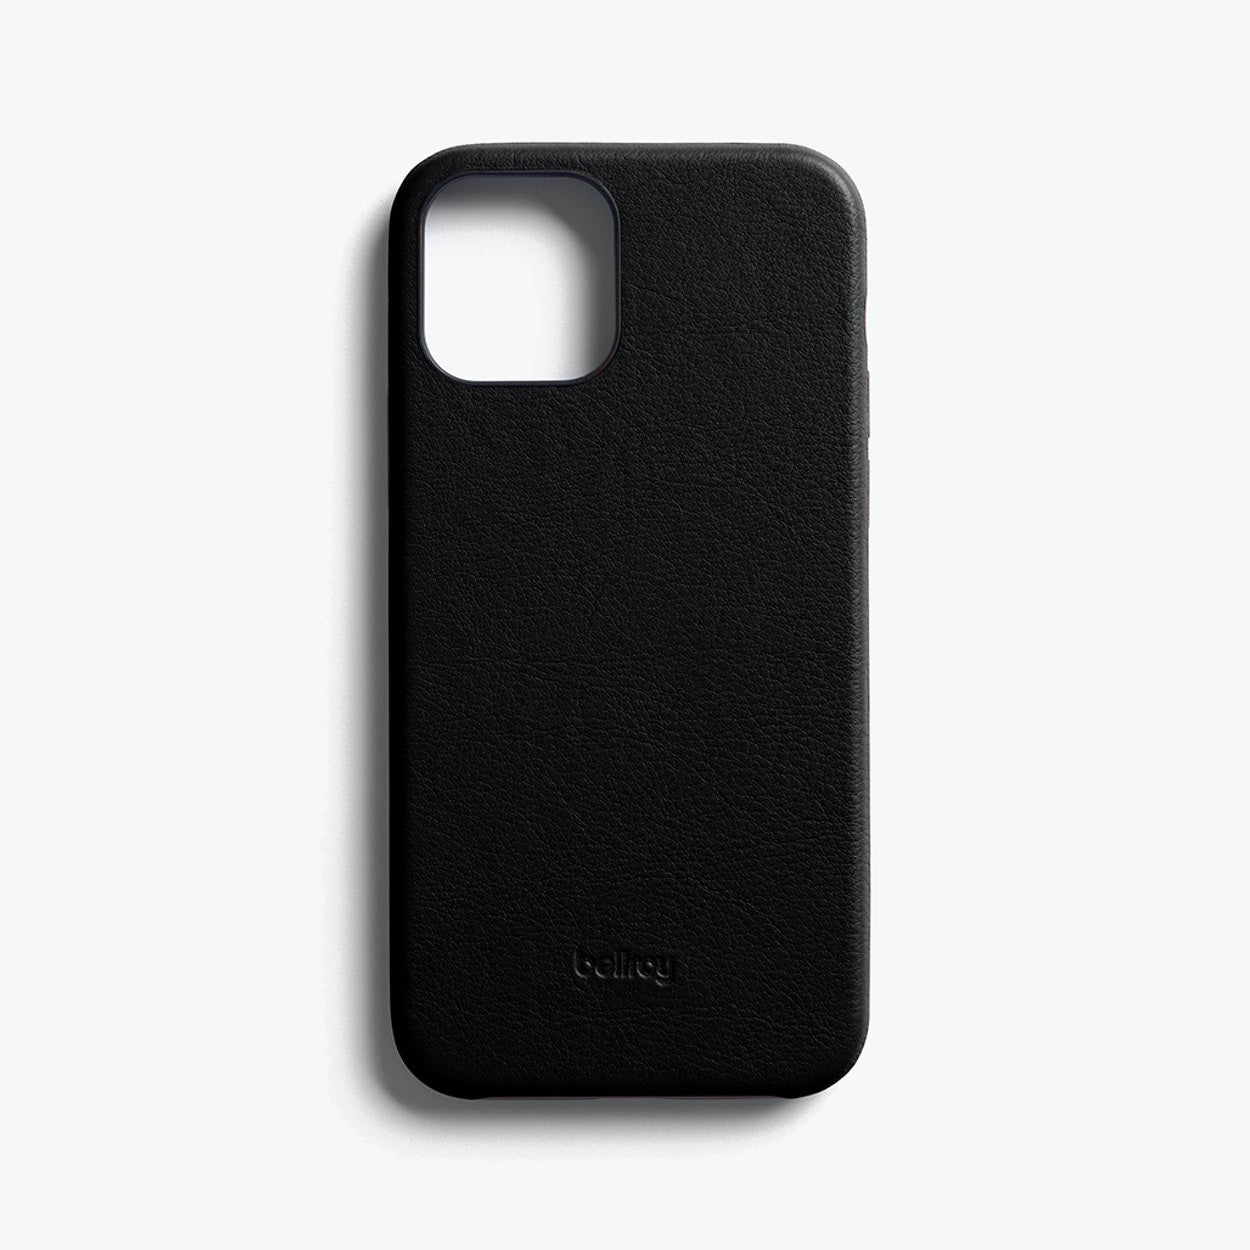 Bellroy Slim Genuine Leather Case For iPhone iPhone 12 mini - BLACK